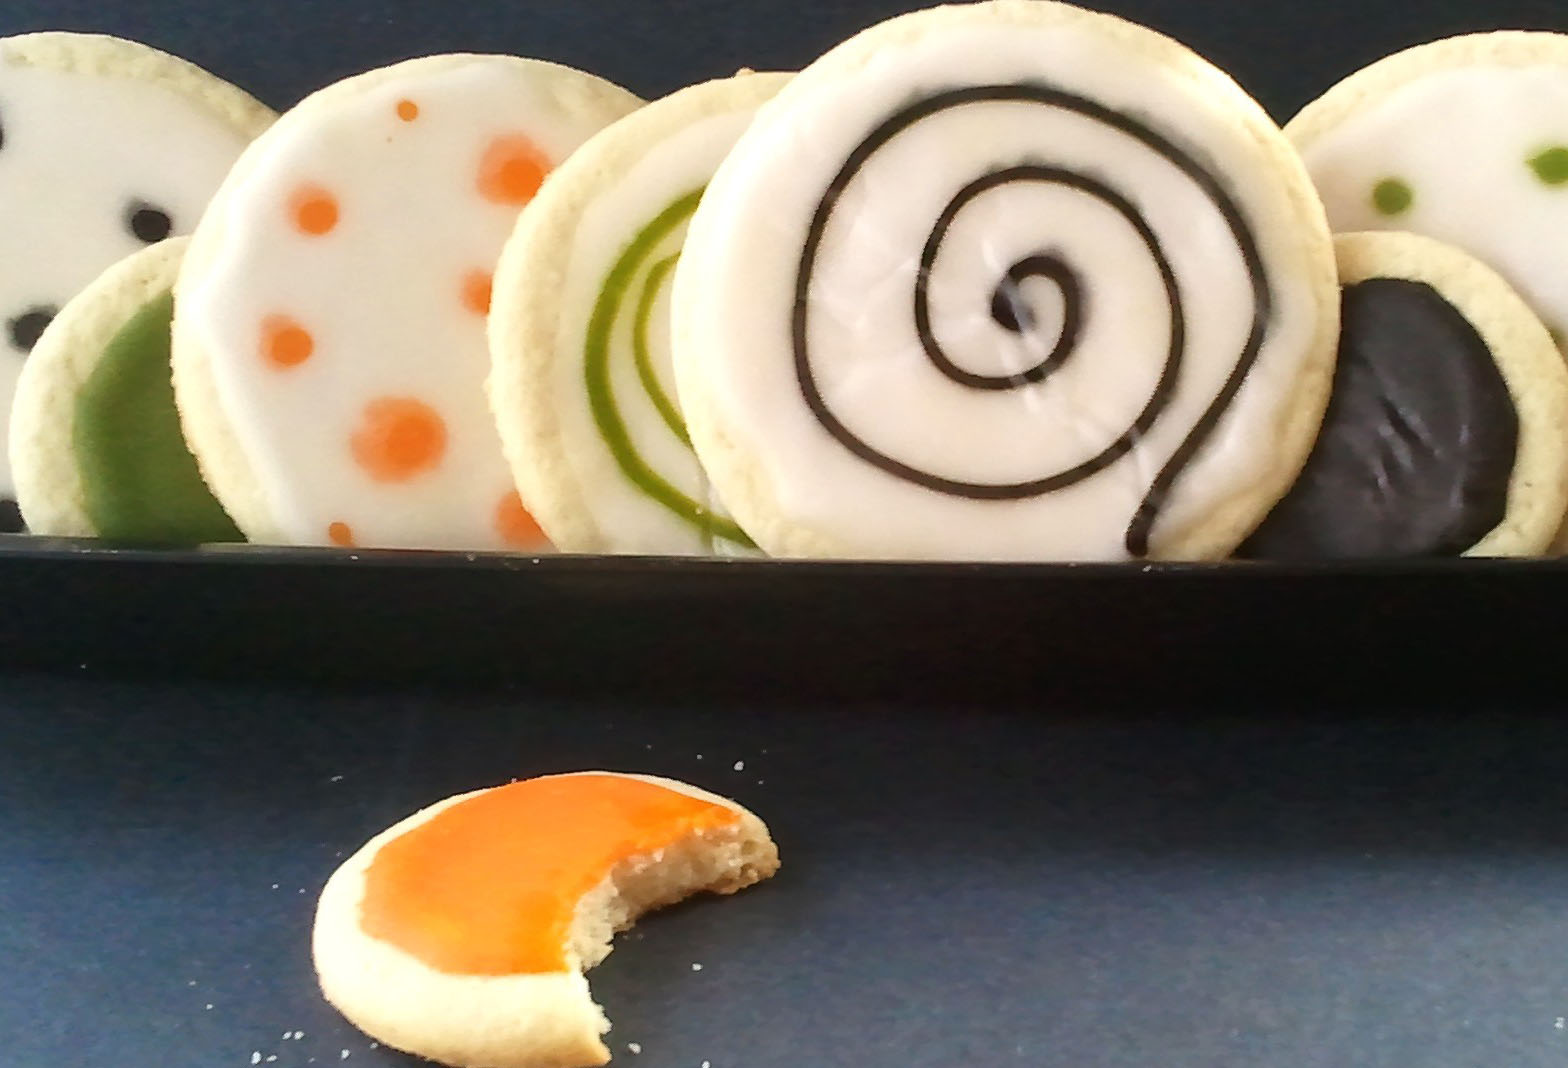 frosted round cookies decorated with swirls and polka dots